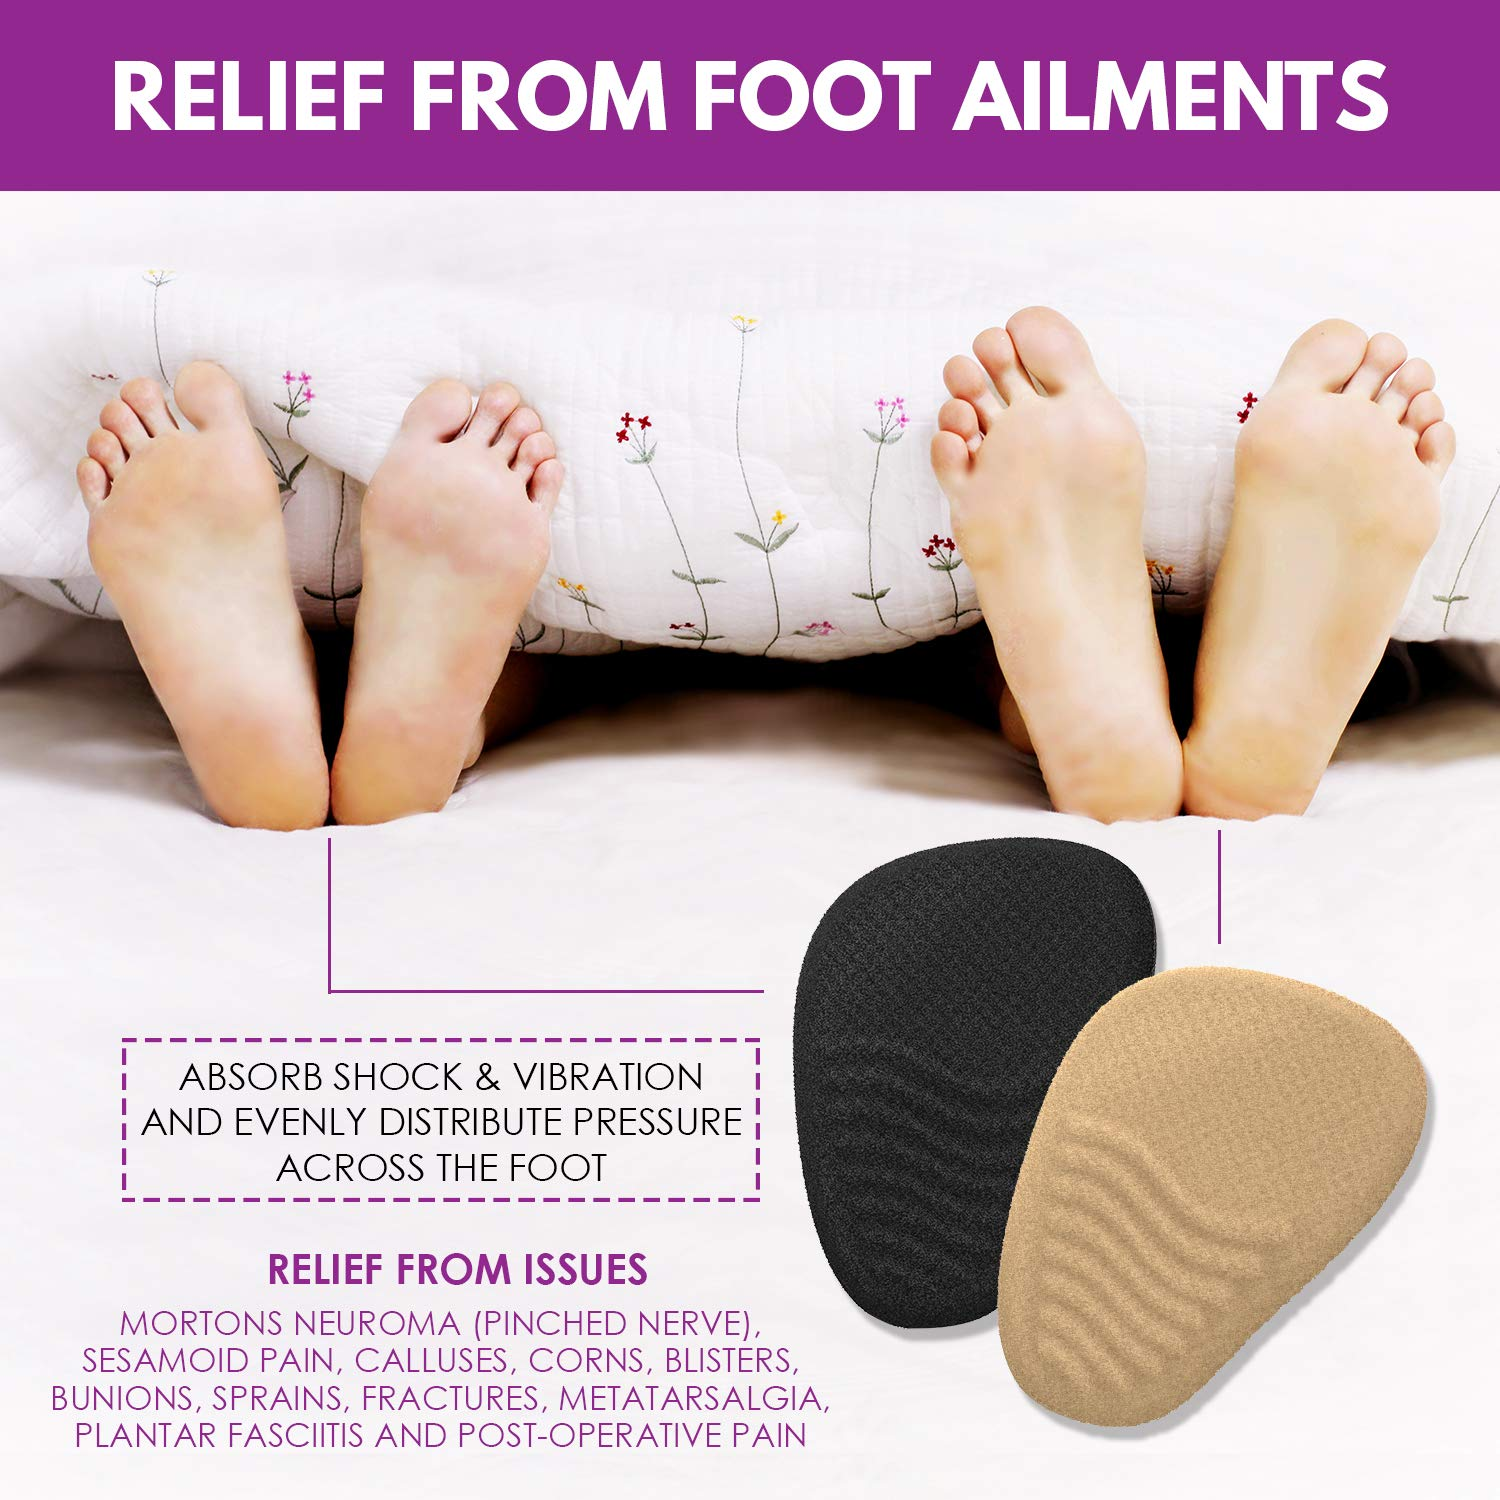 Metatarsal Pads for Women (4 Pairs: 8 Pieces) - Ball of Foot Cushions and High Heel Shoe Inserts | Protect Your Feet | Pain Relief from Neuroma, Bunions, Blisters, Callus, Metatarsalgia and Forefoot by Chambellan (Image #6)